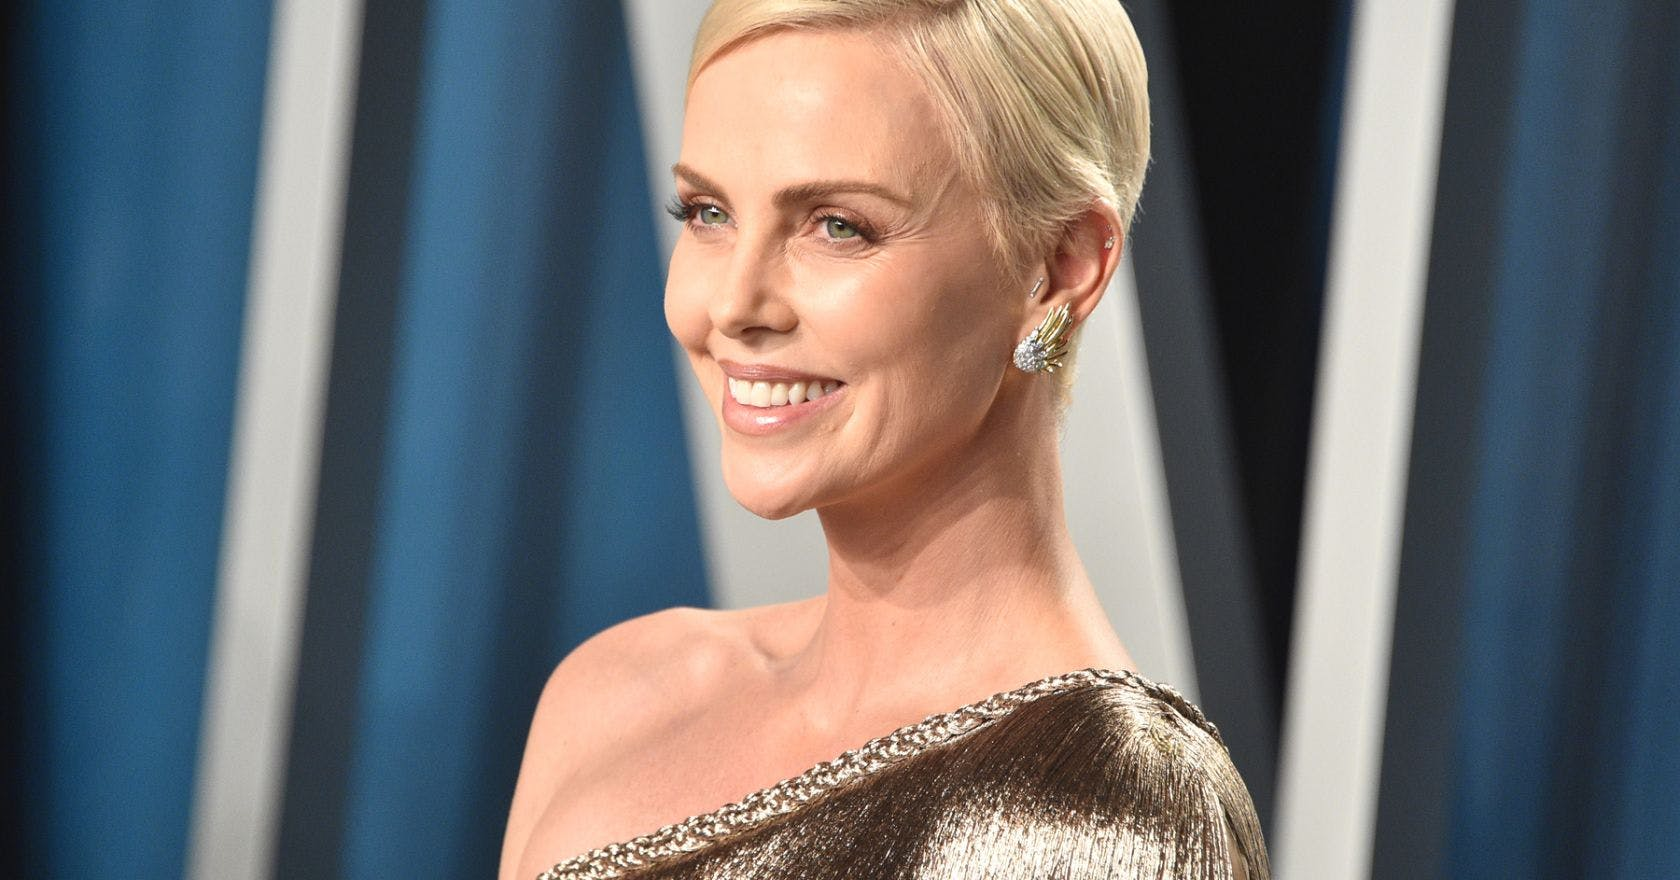 Charlize Theron's embellished hair at the Oscars is all about the subtle statement